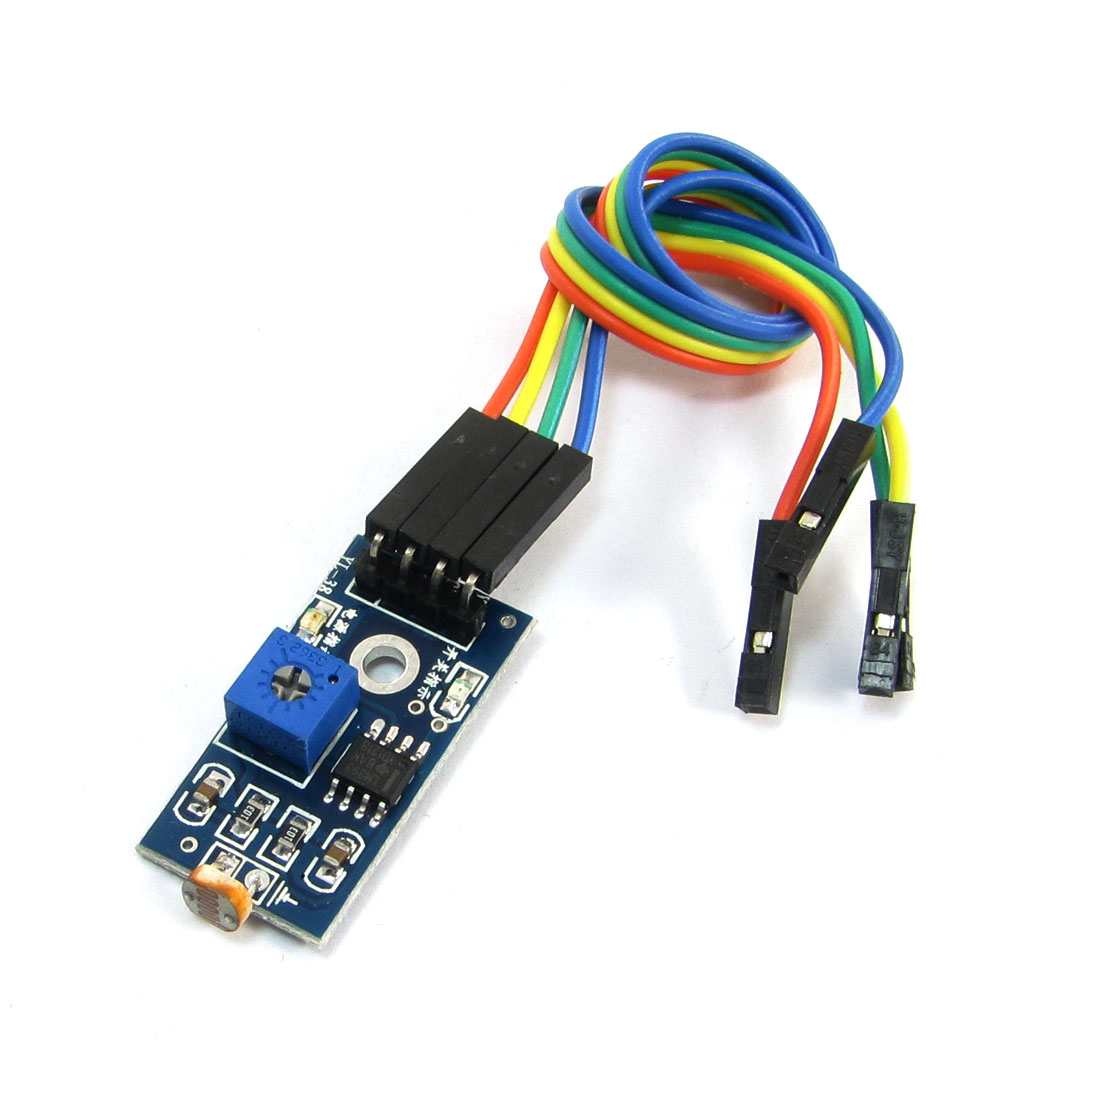 DC 3.3-5V 20cm Cable Length Photo Resistor Photoelectric Sensor Module